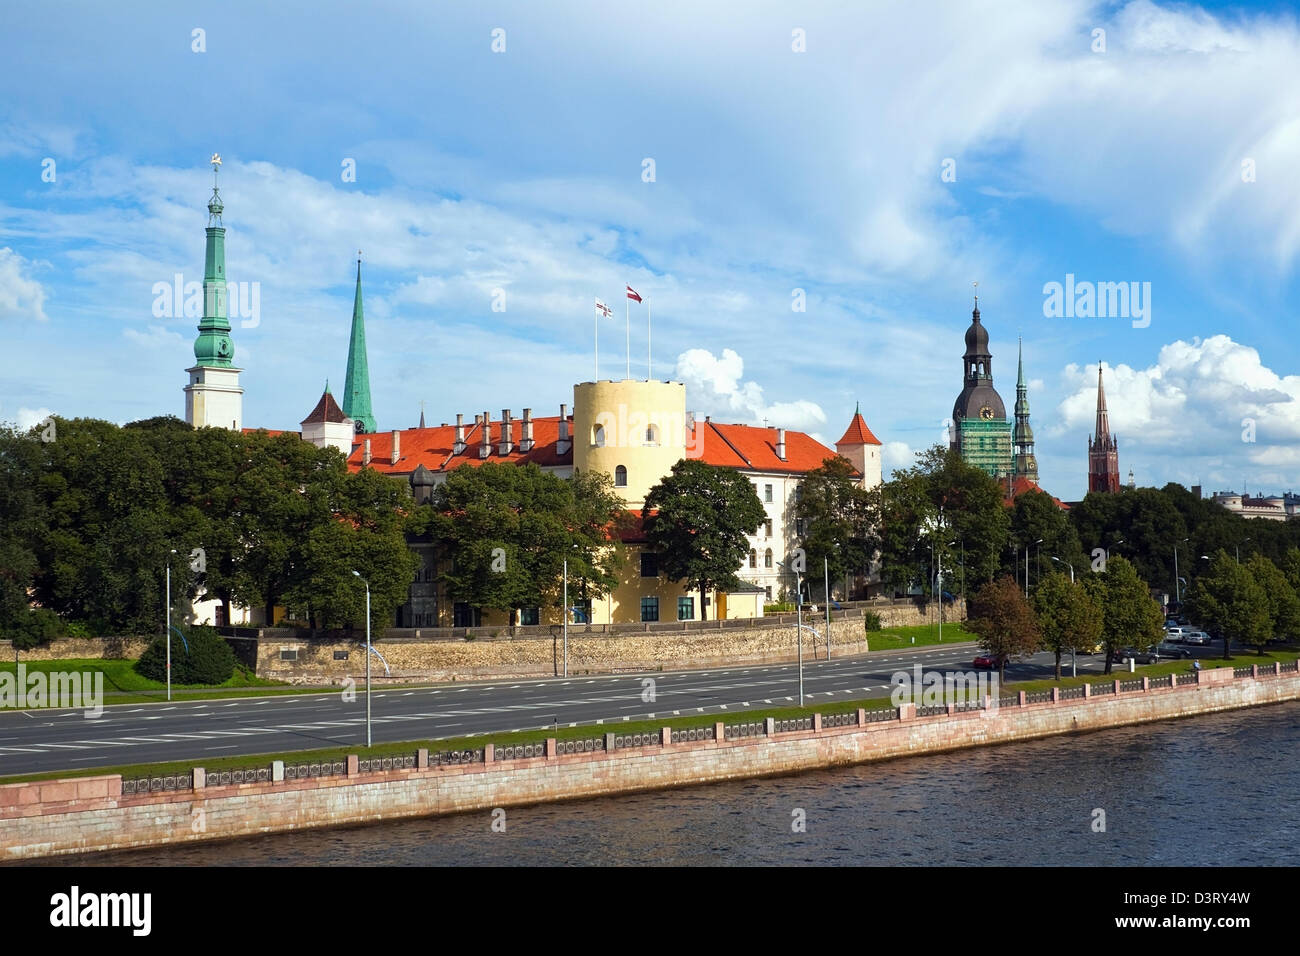 Latvian president castle in the Riga city - Stock Image